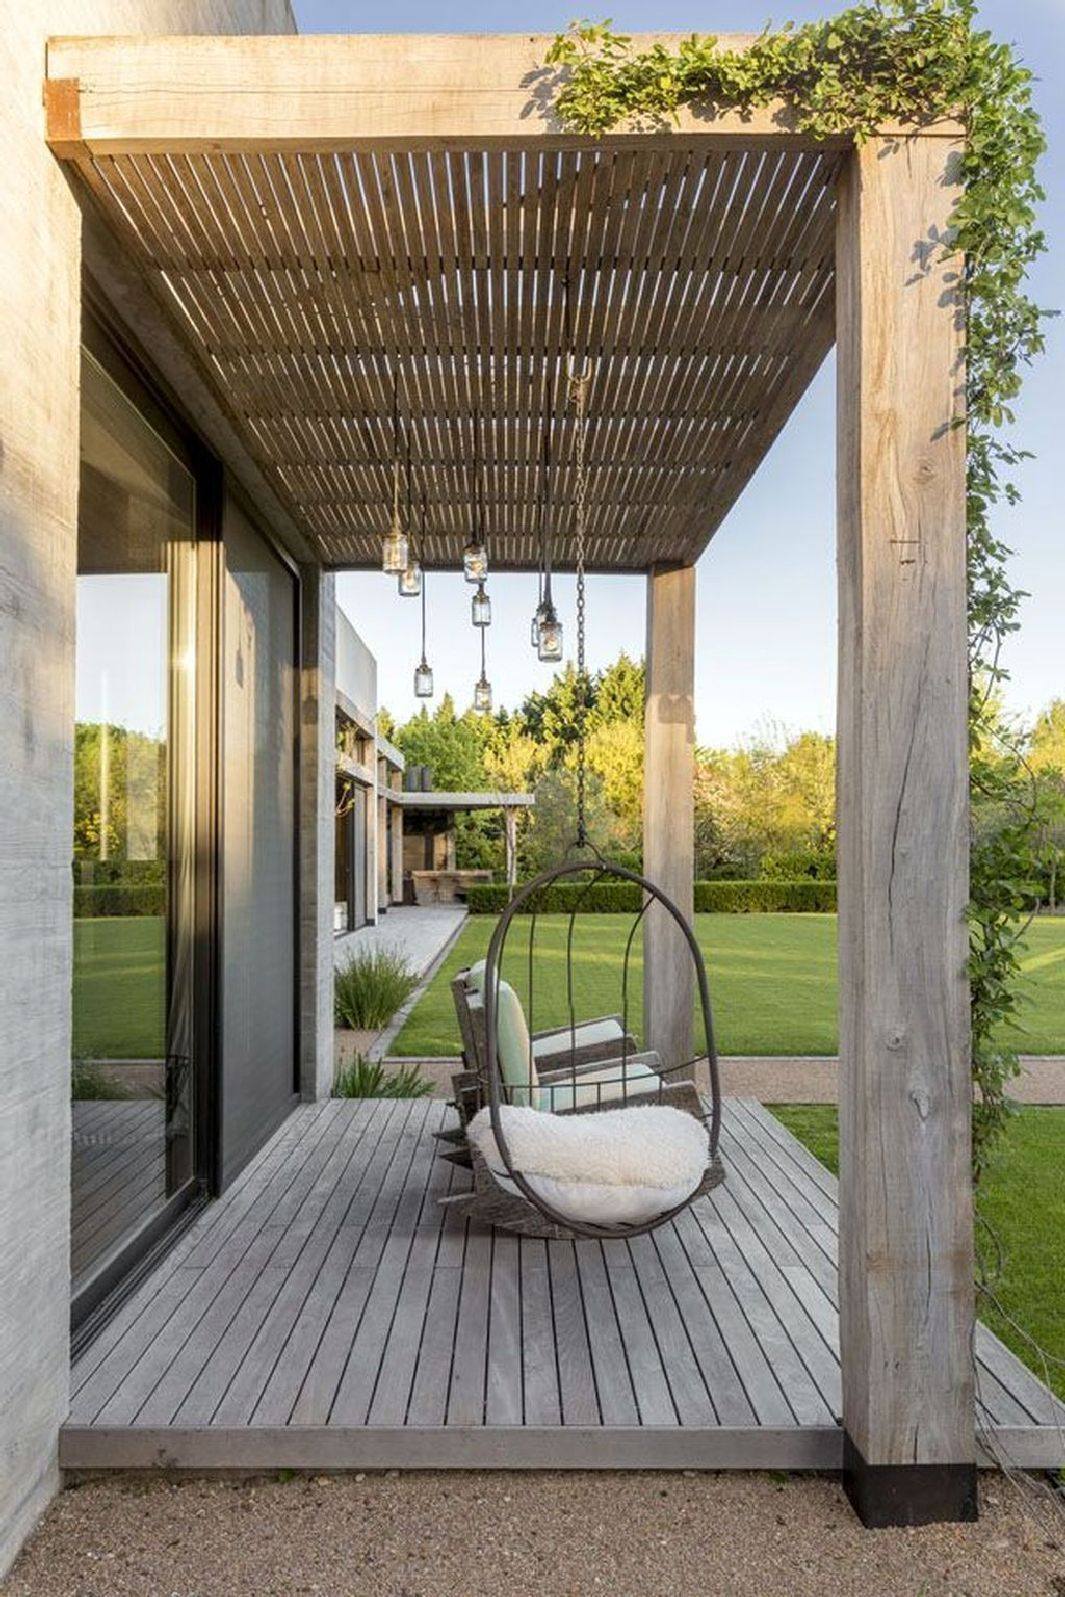 wall pergola design on 40 best pergola patio ideas covered to beautify your home 17 beautify covered 17beautify beaut pergola patio covered pergola patio outdoor patio designs 40 best pergola patio ideas covered to